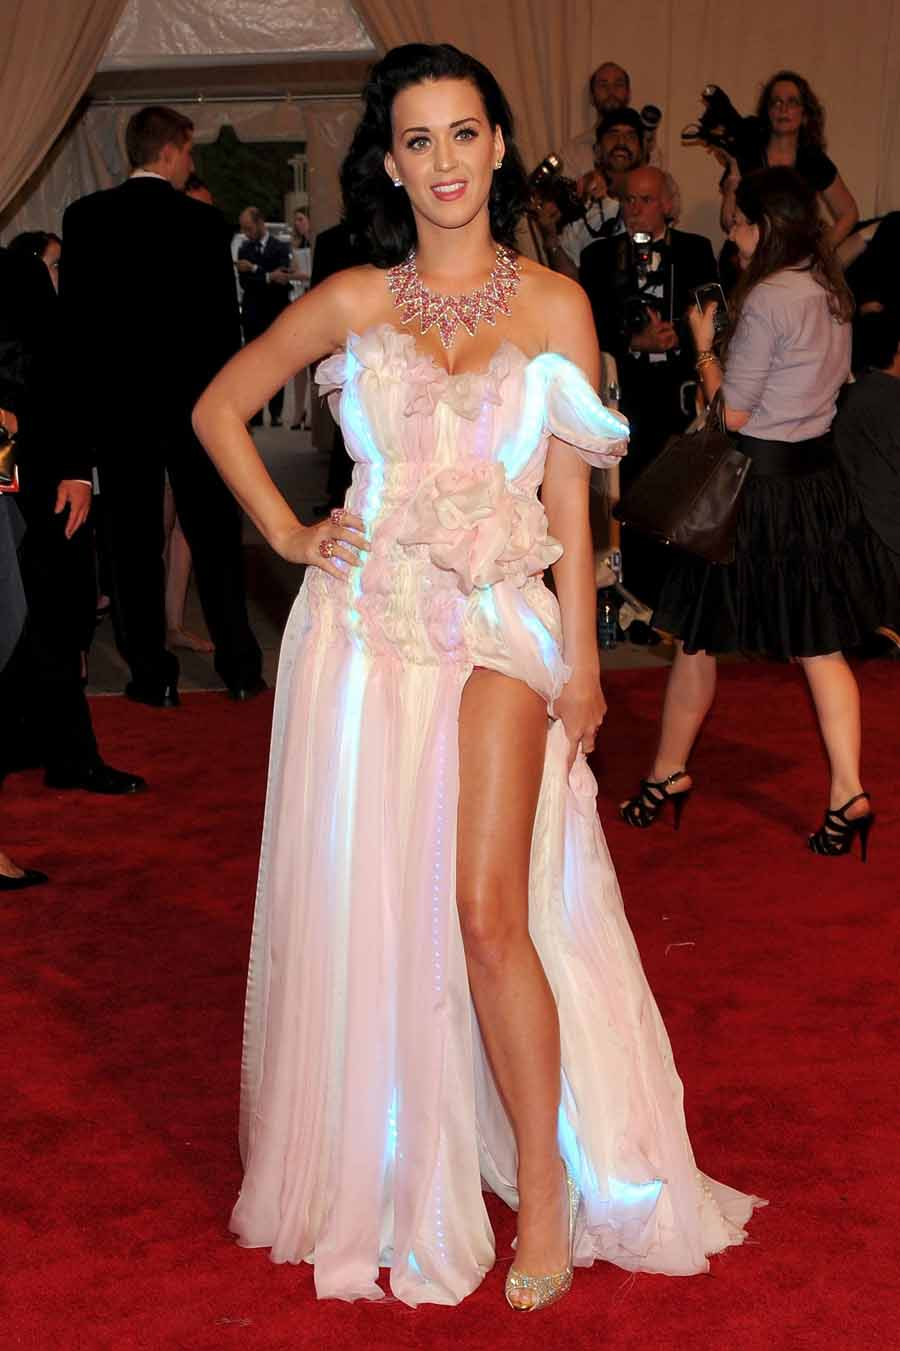 Katy-Perry-metropolitan-muesum-of-art-costume-intitute-gala